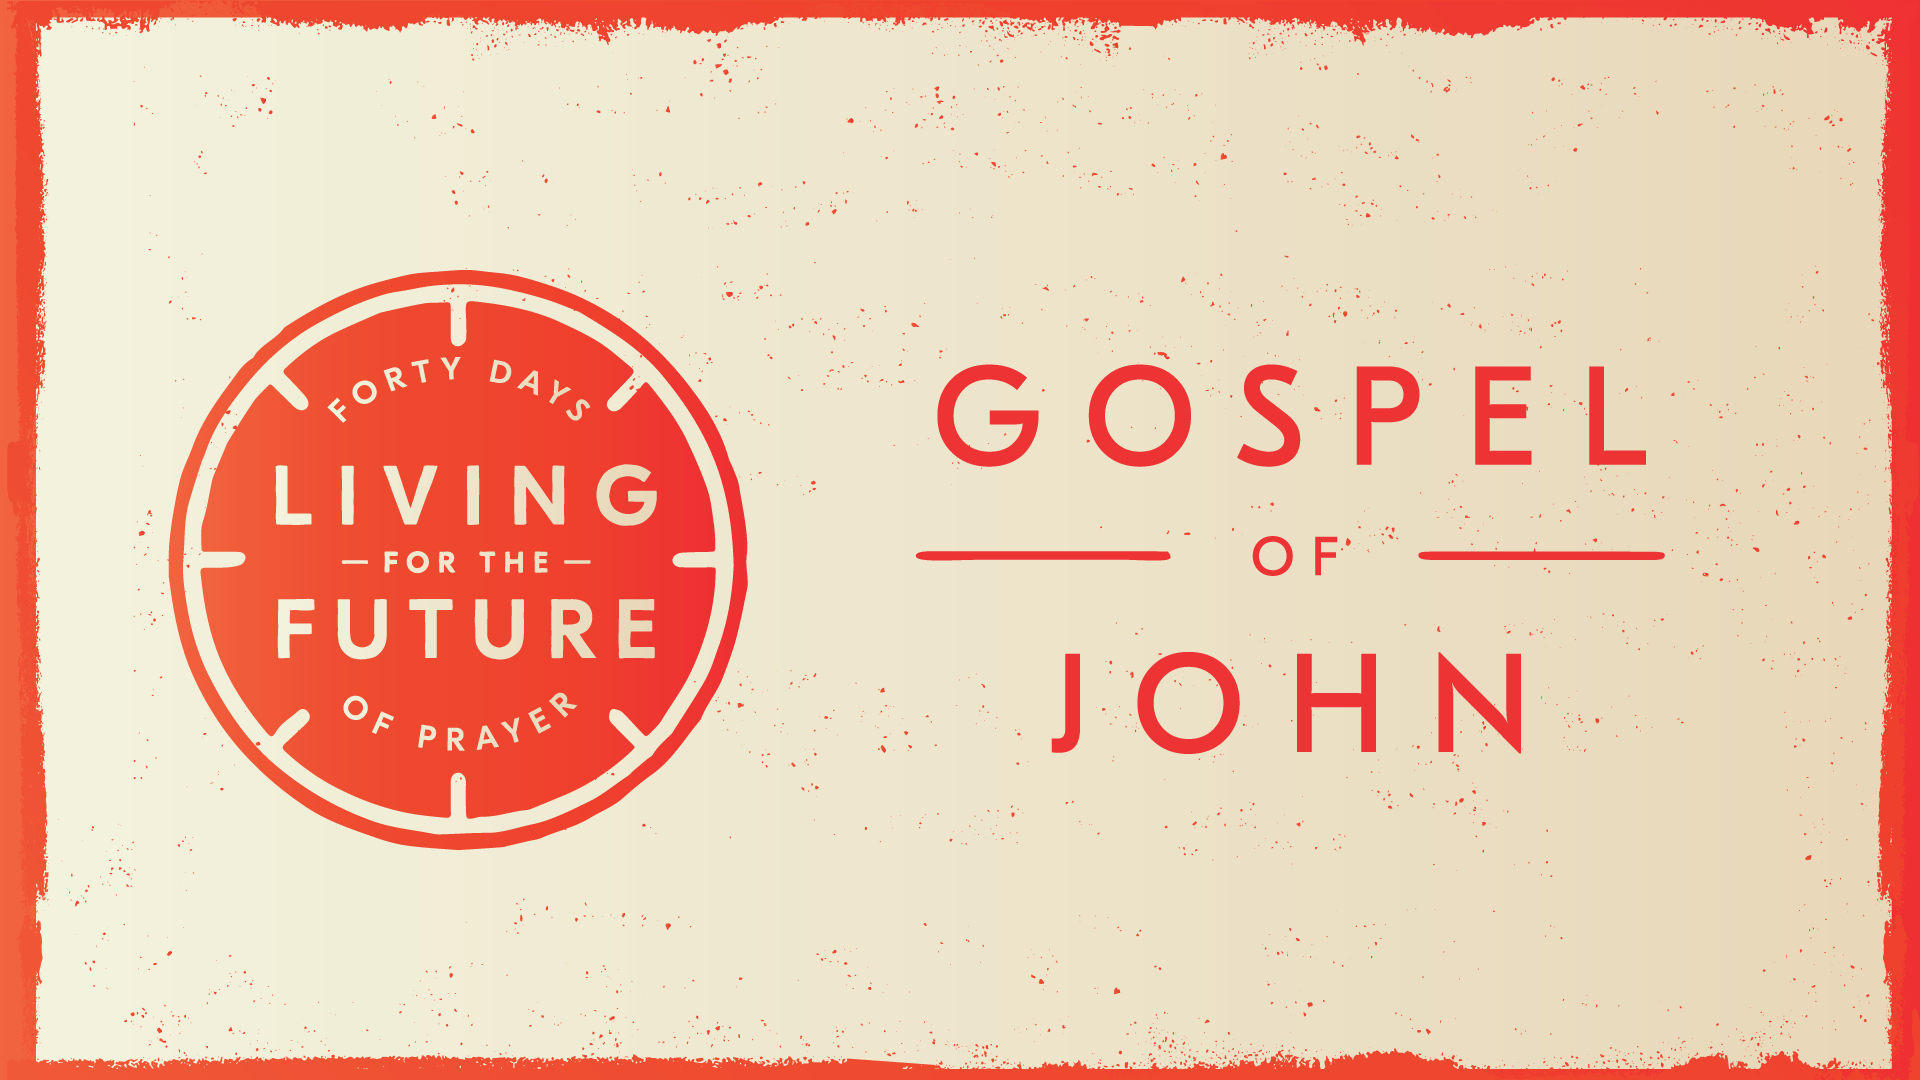 40 Days Of Prayer: The Gospel Of John    December 28th, 2018